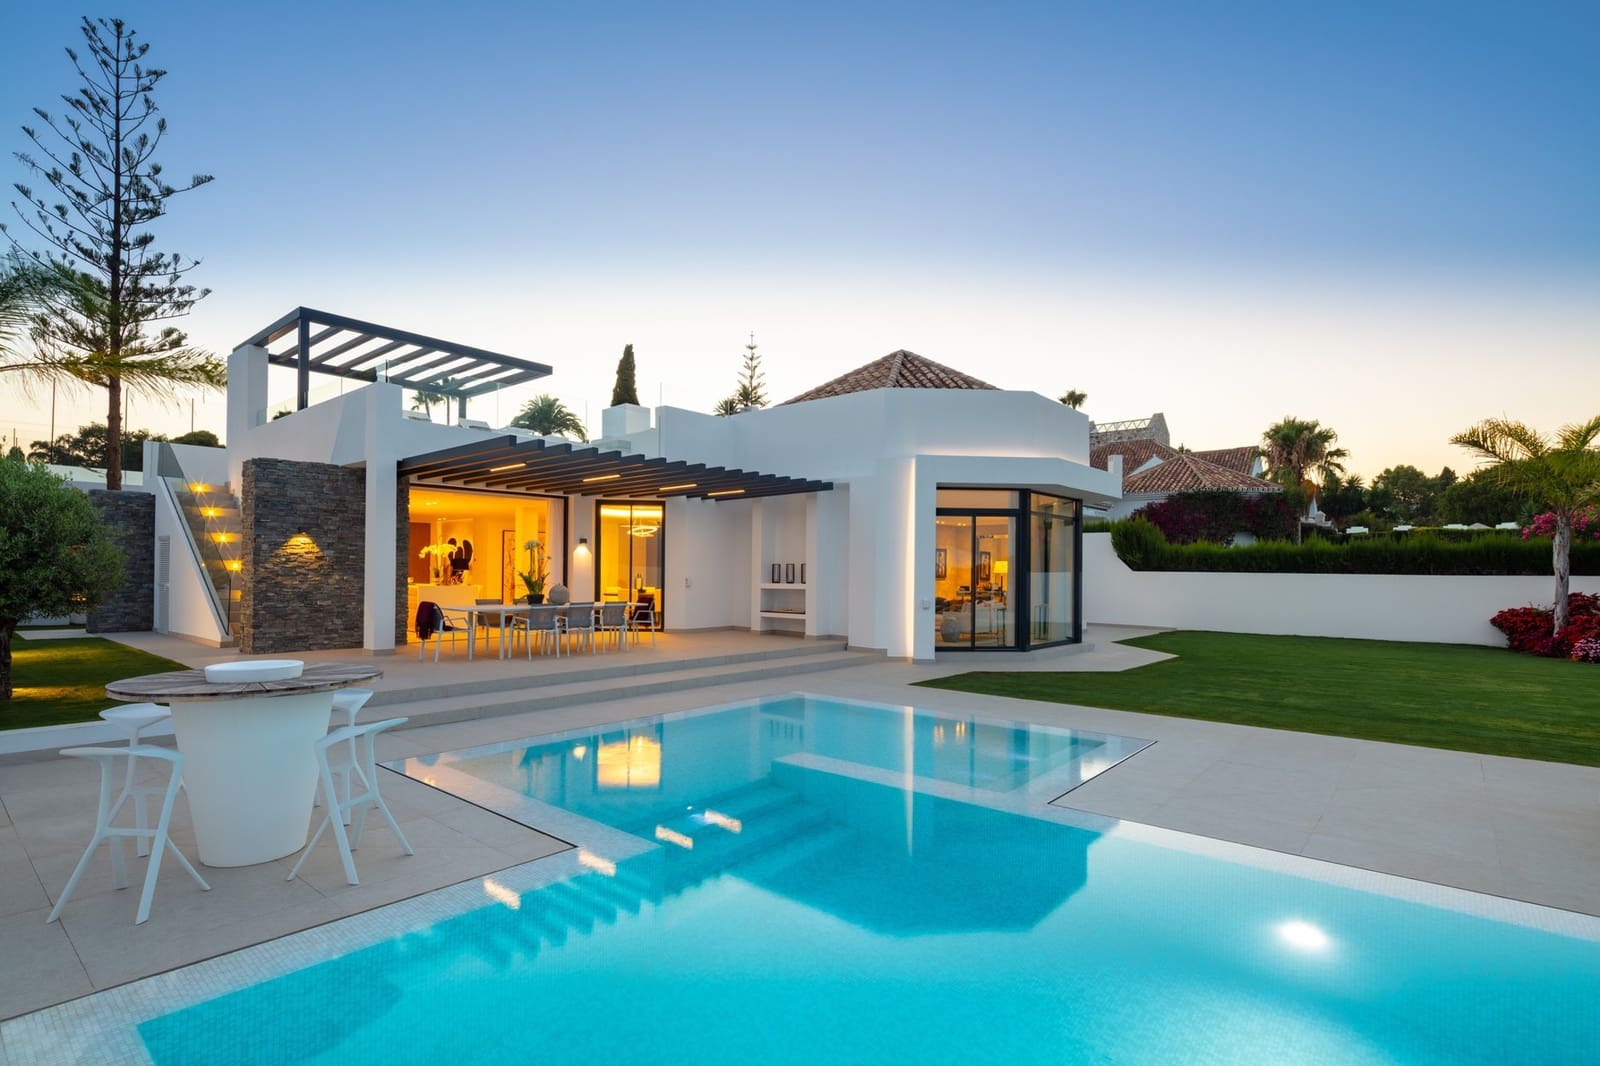 5 bedroom Villa for sale in Nueva Andalucia with pool - € 3,495,000 (Ref: 5527184)